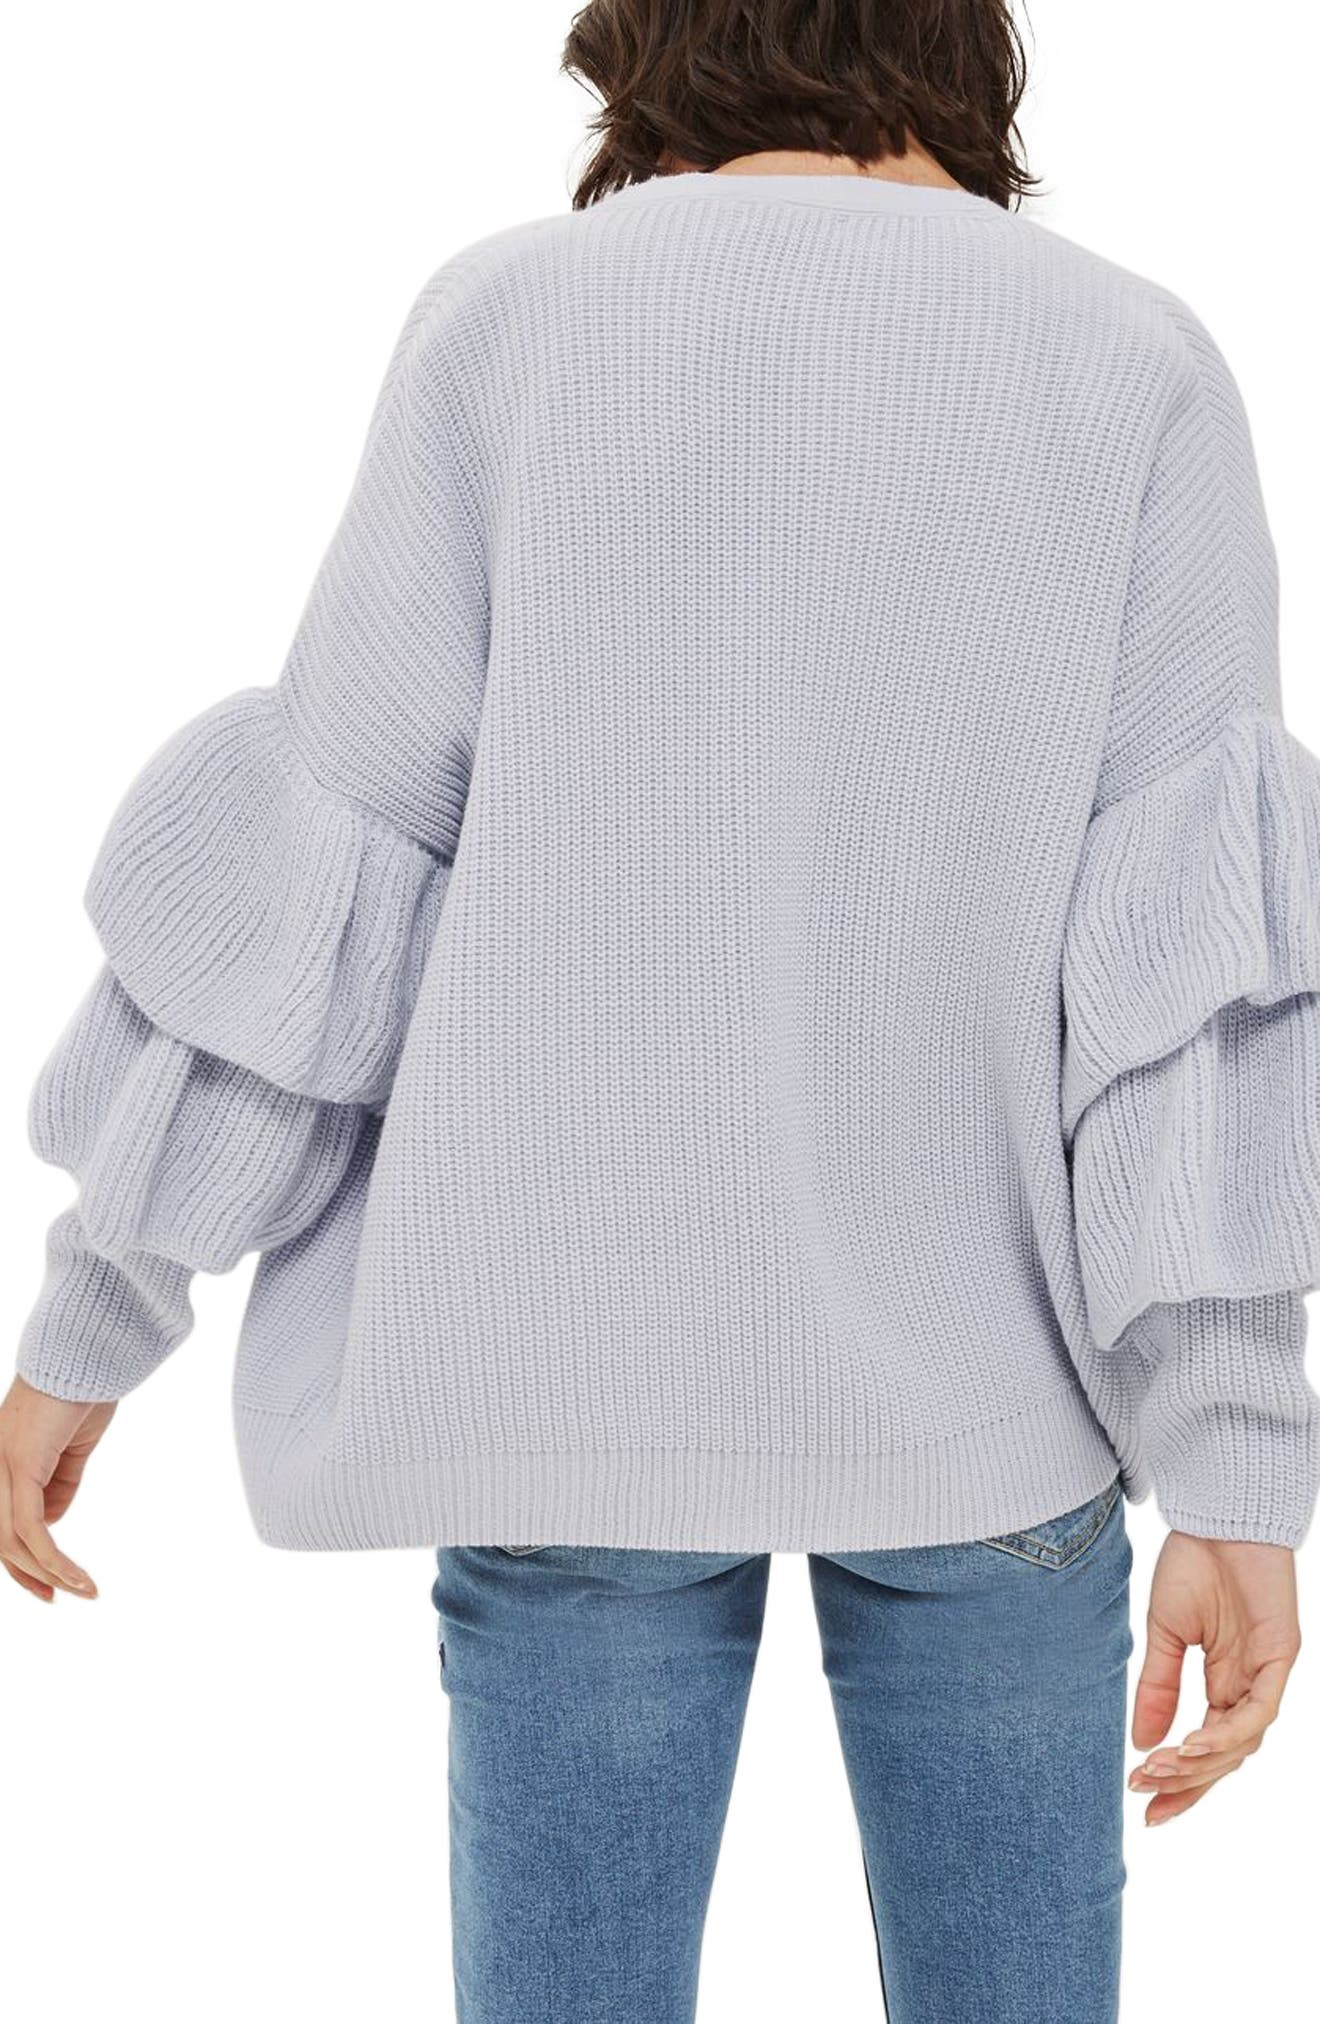 Alternate Image 3  - Topshop Layered Ruffle Sleeve Cardigan